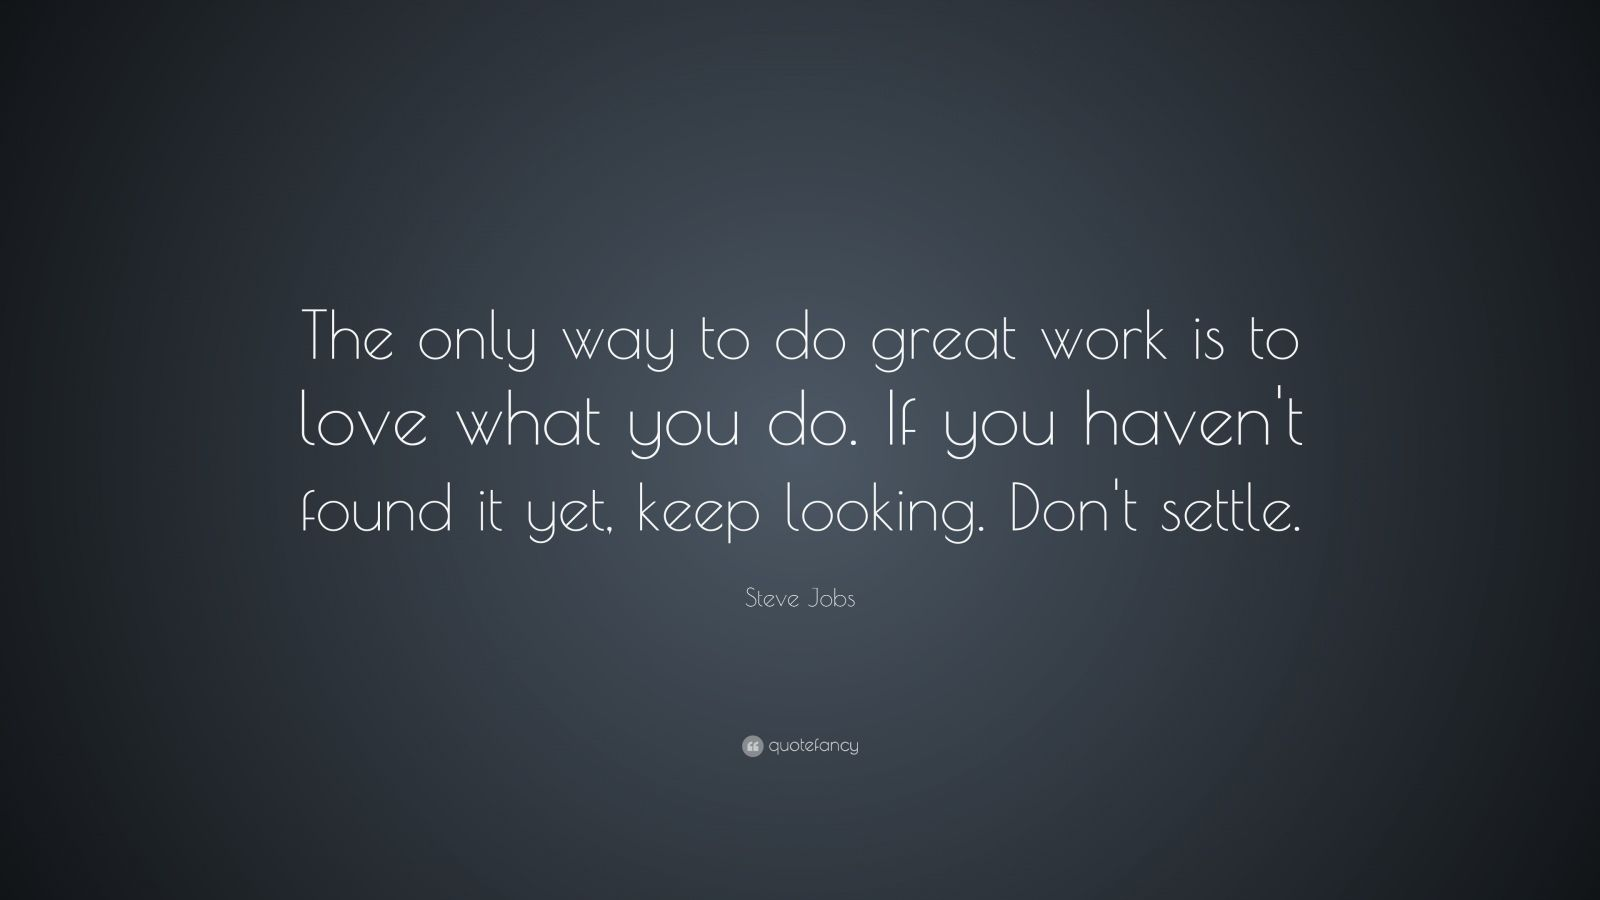 Steve Jobs Quotes (35 wallpapers) - Quotefancy